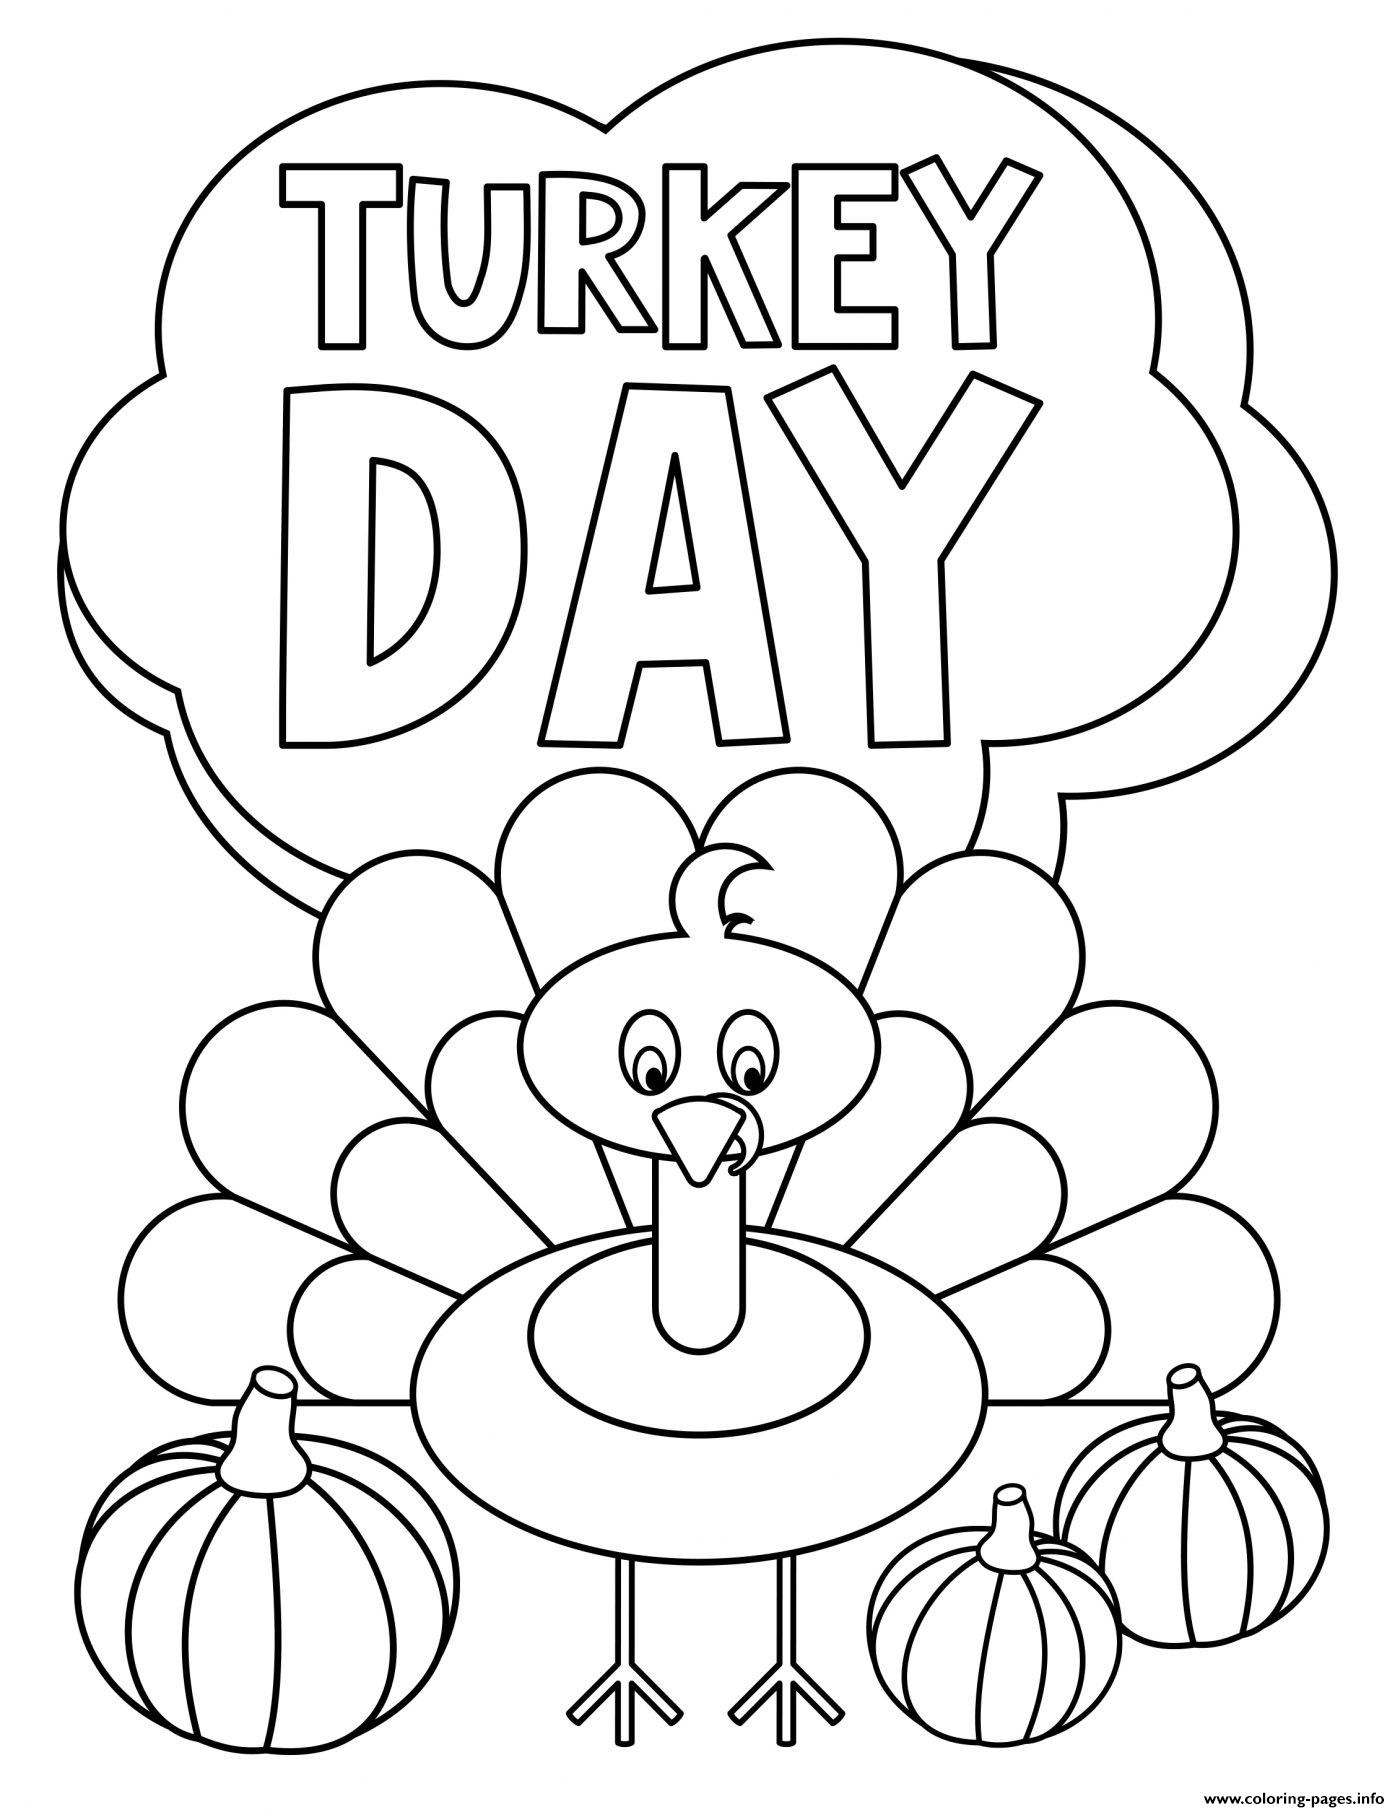 FREE Thanksgiving Coloring Pages for Adults & Kids - Happiness is ... | 1812x1400